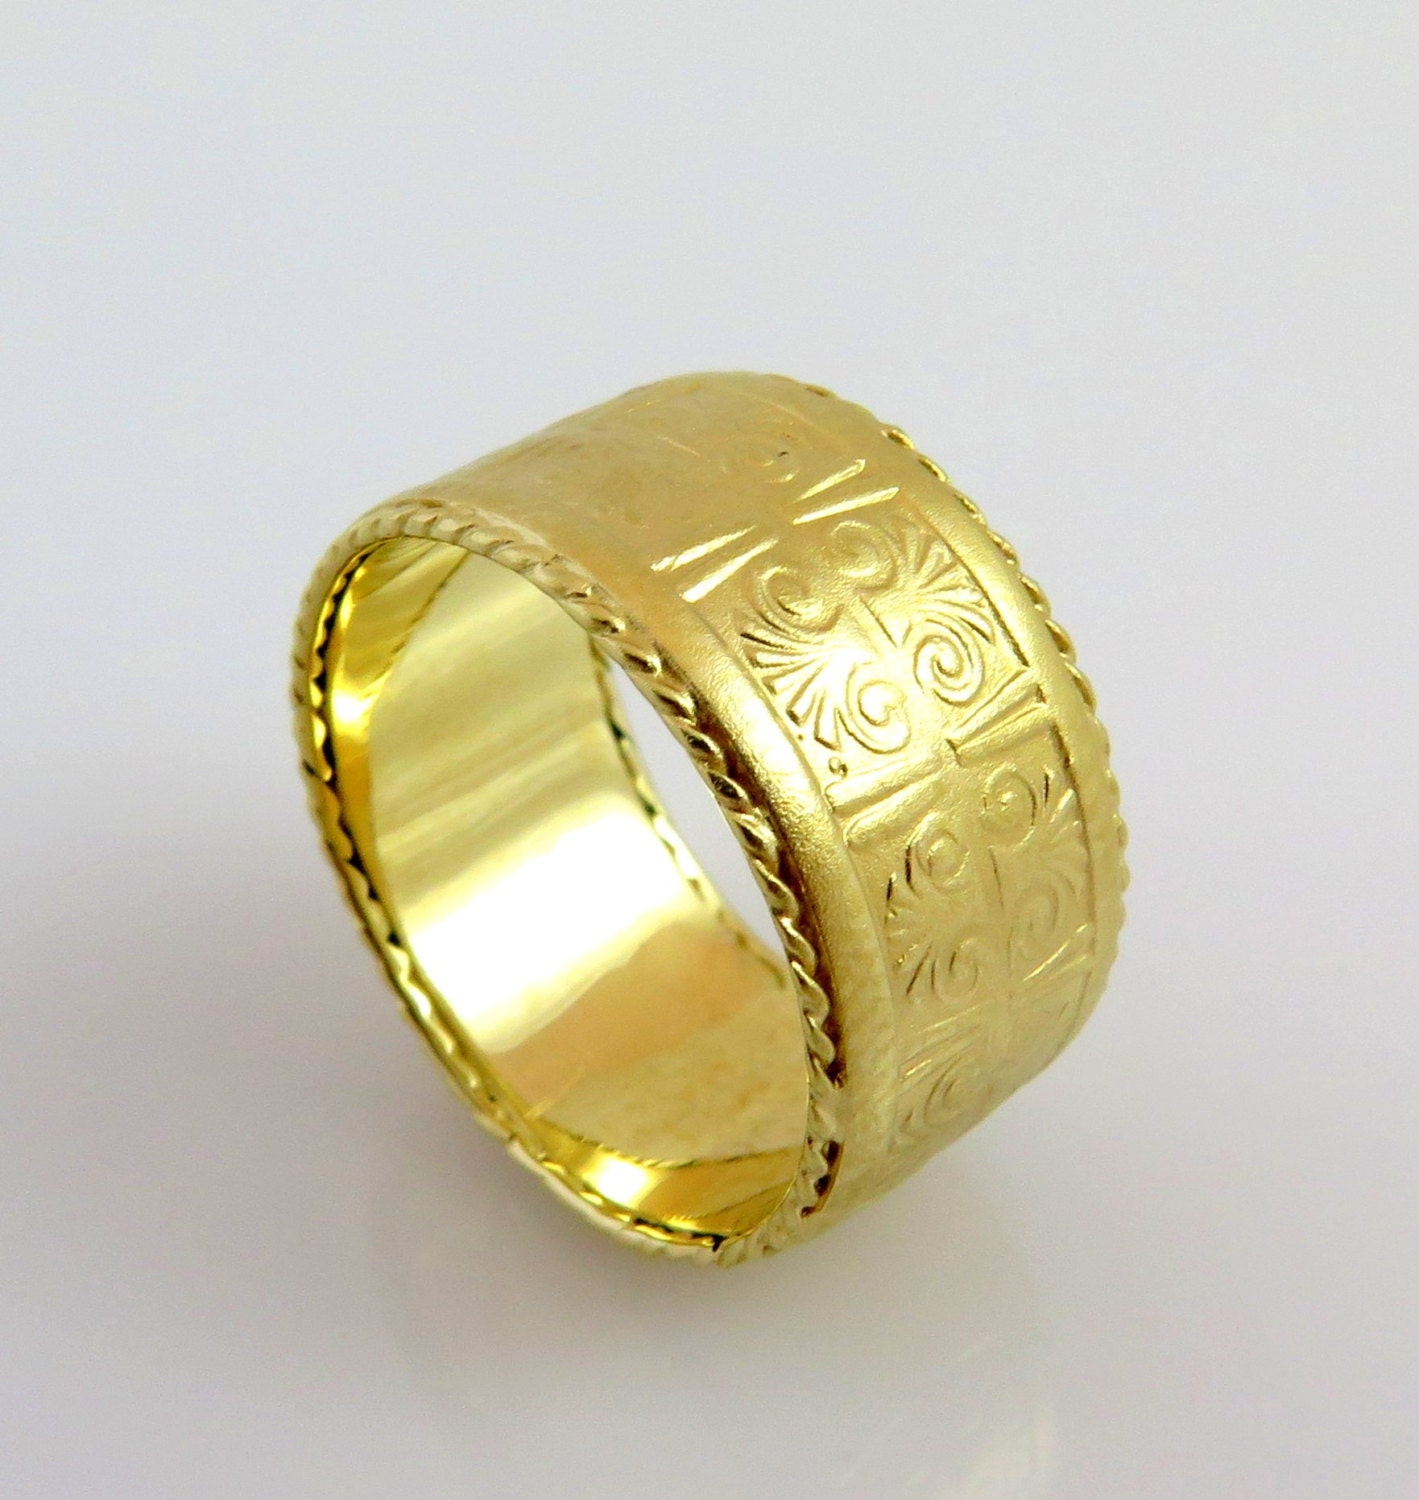 gold for full her ring gaelic size rings scottish bands design band of wedding yellow inscriptions